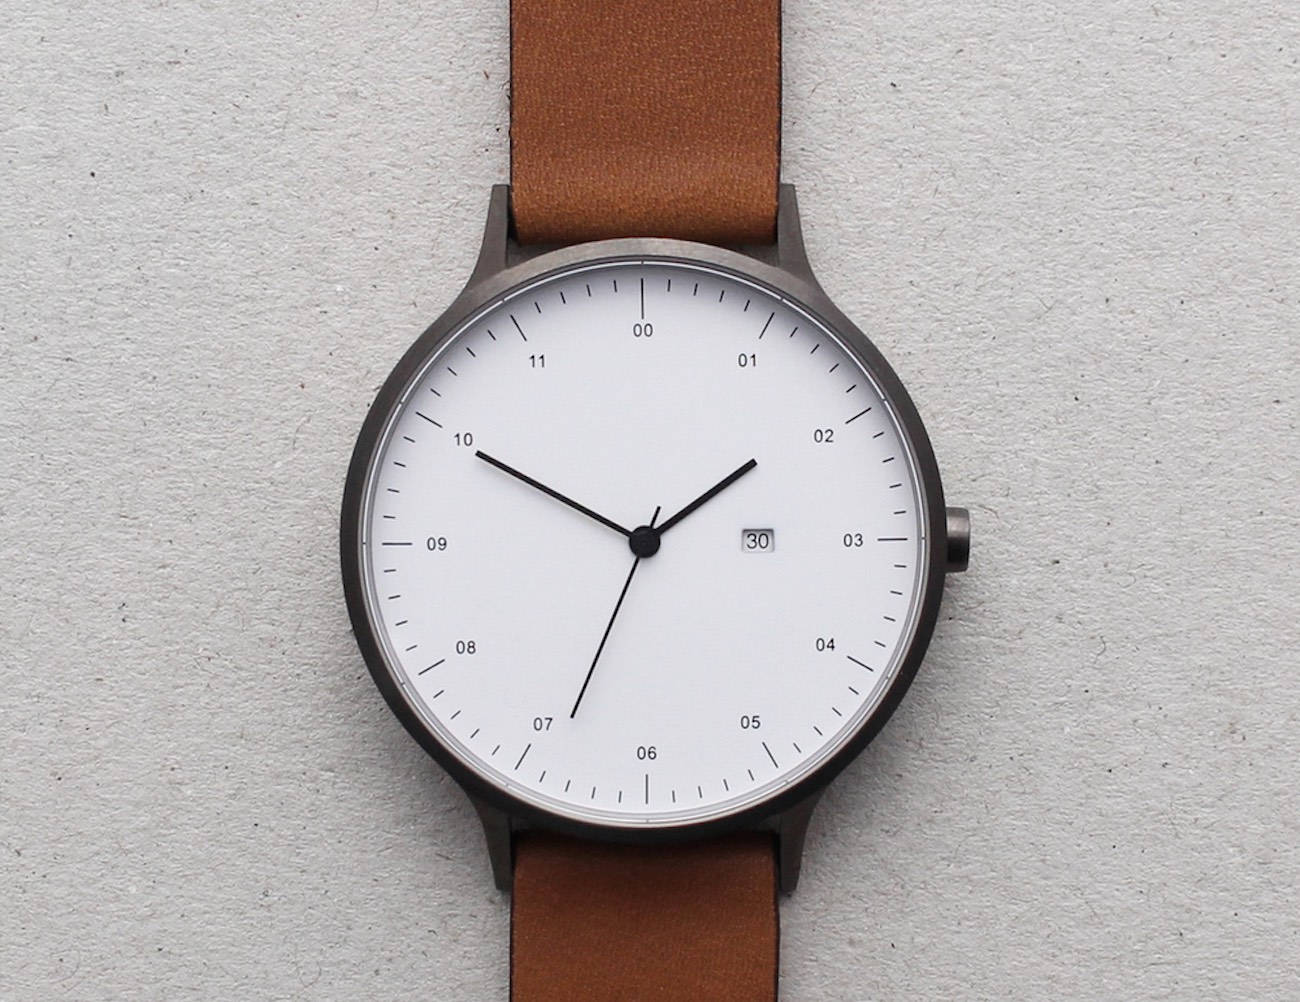 INSTRMNT 01-A Watch – Gunmetal Steel Casing and Tan Leather Strap